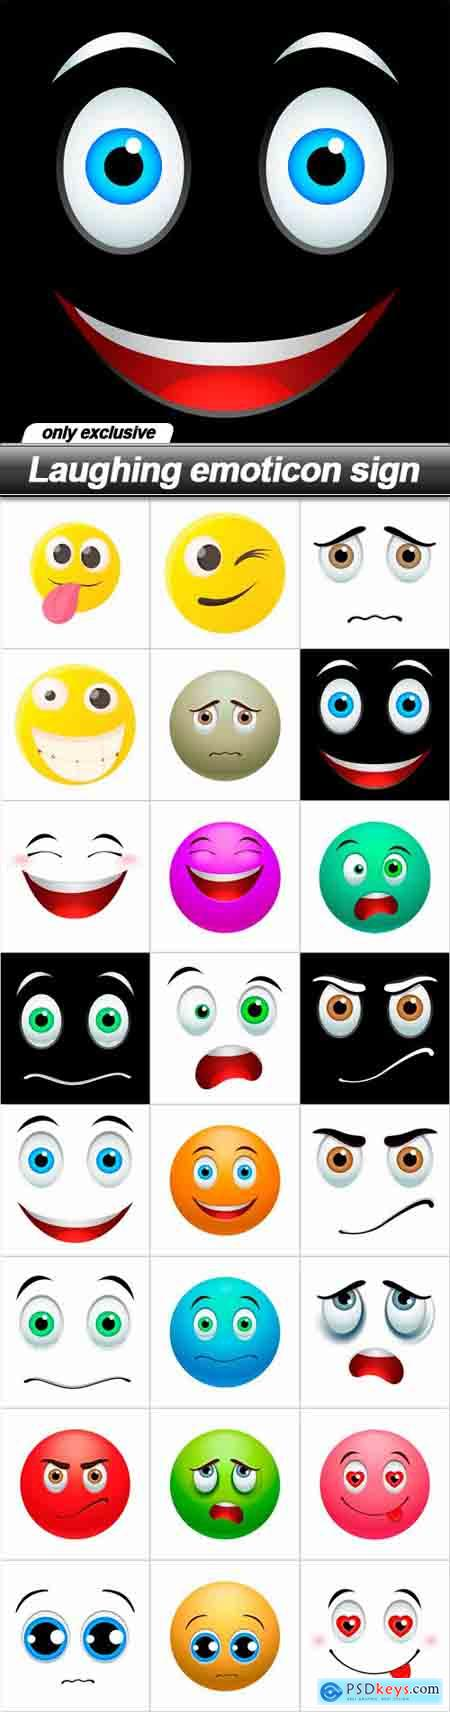 Laughing emoticon sign - 24 EPS